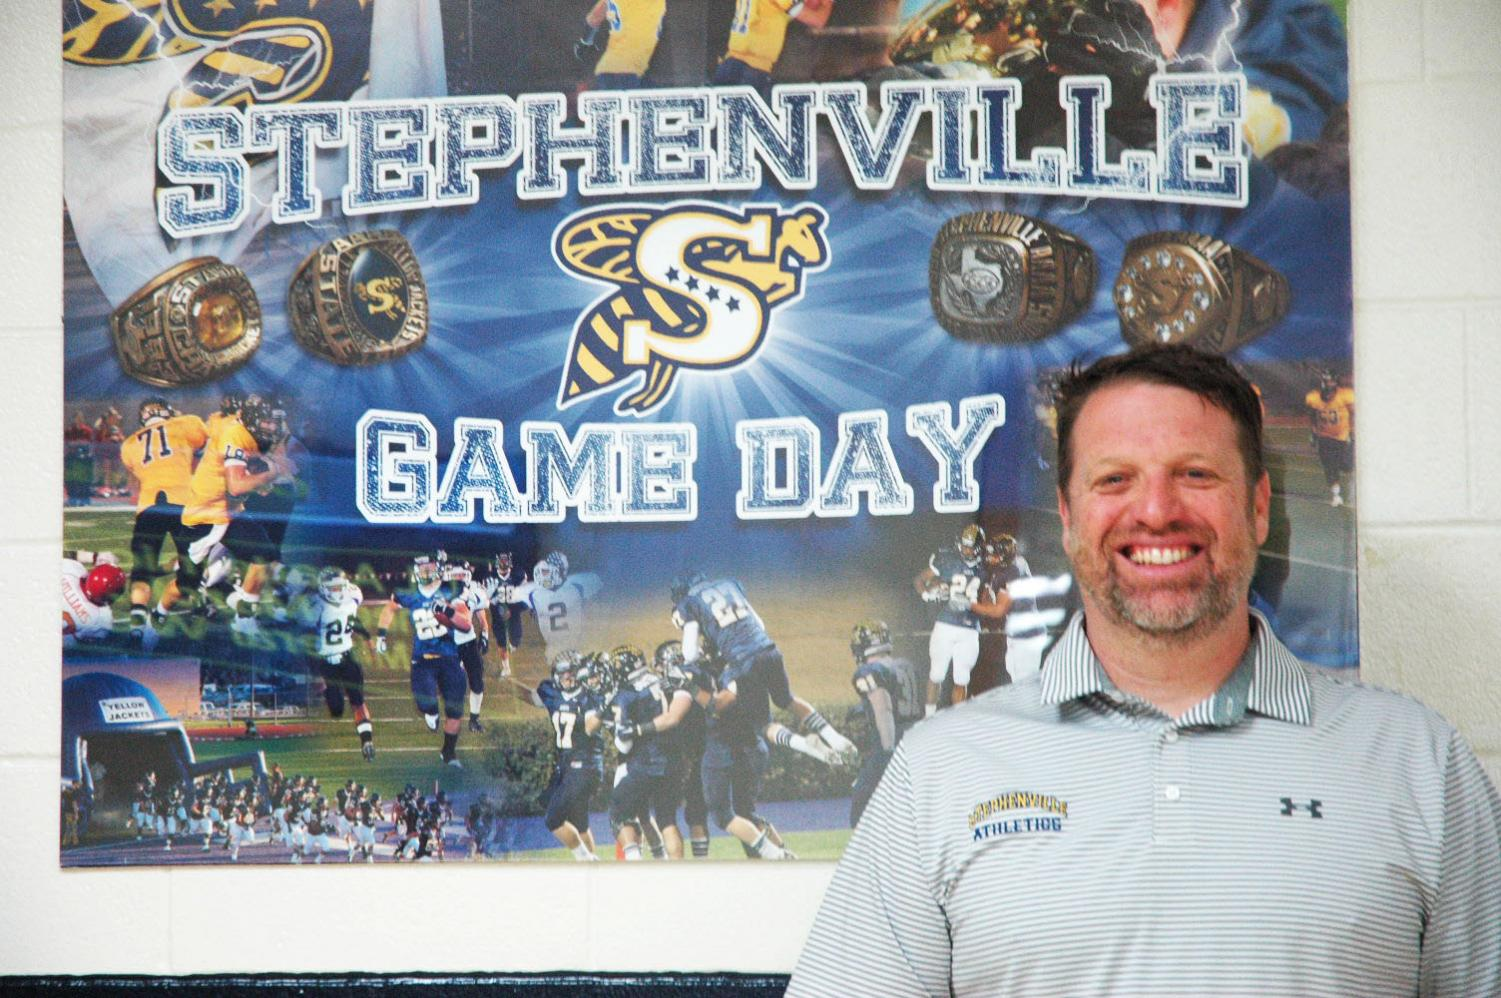 Athletic Director Coach Womack moves to a town rich in tradition because he values family in his life as well as what the Yellow Jackets and Honeybees stand for.